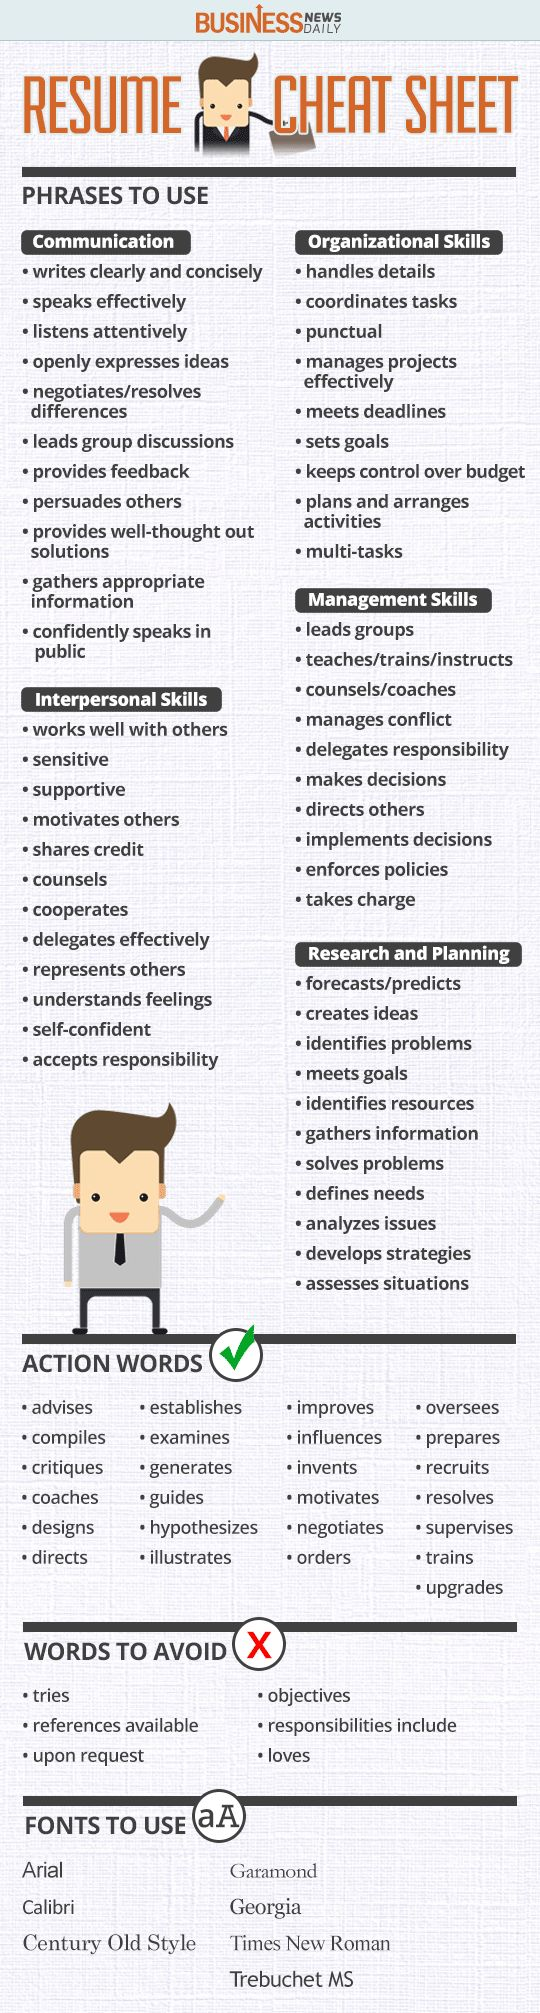 Opposenewapstandardsus  Marvellous  Ideas About Resume On Pinterest  Cv Format Resume Cv And  With Outstanding Resume Cheat Sheet Infographic Andrews Almost Done With A Complete Unit On Employment Which With Adorable Teacher Resume Skills Also Definition Resume In Addition Counselor Resume And Visual Merchandiser Resume As Well As Entry Level Administrative Assistant Resume Additionally Tutoring Resume From Pinterestcom With Opposenewapstandardsus  Outstanding  Ideas About Resume On Pinterest  Cv Format Resume Cv And  With Adorable Resume Cheat Sheet Infographic Andrews Almost Done With A Complete Unit On Employment Which And Marvellous Teacher Resume Skills Also Definition Resume In Addition Counselor Resume From Pinterestcom